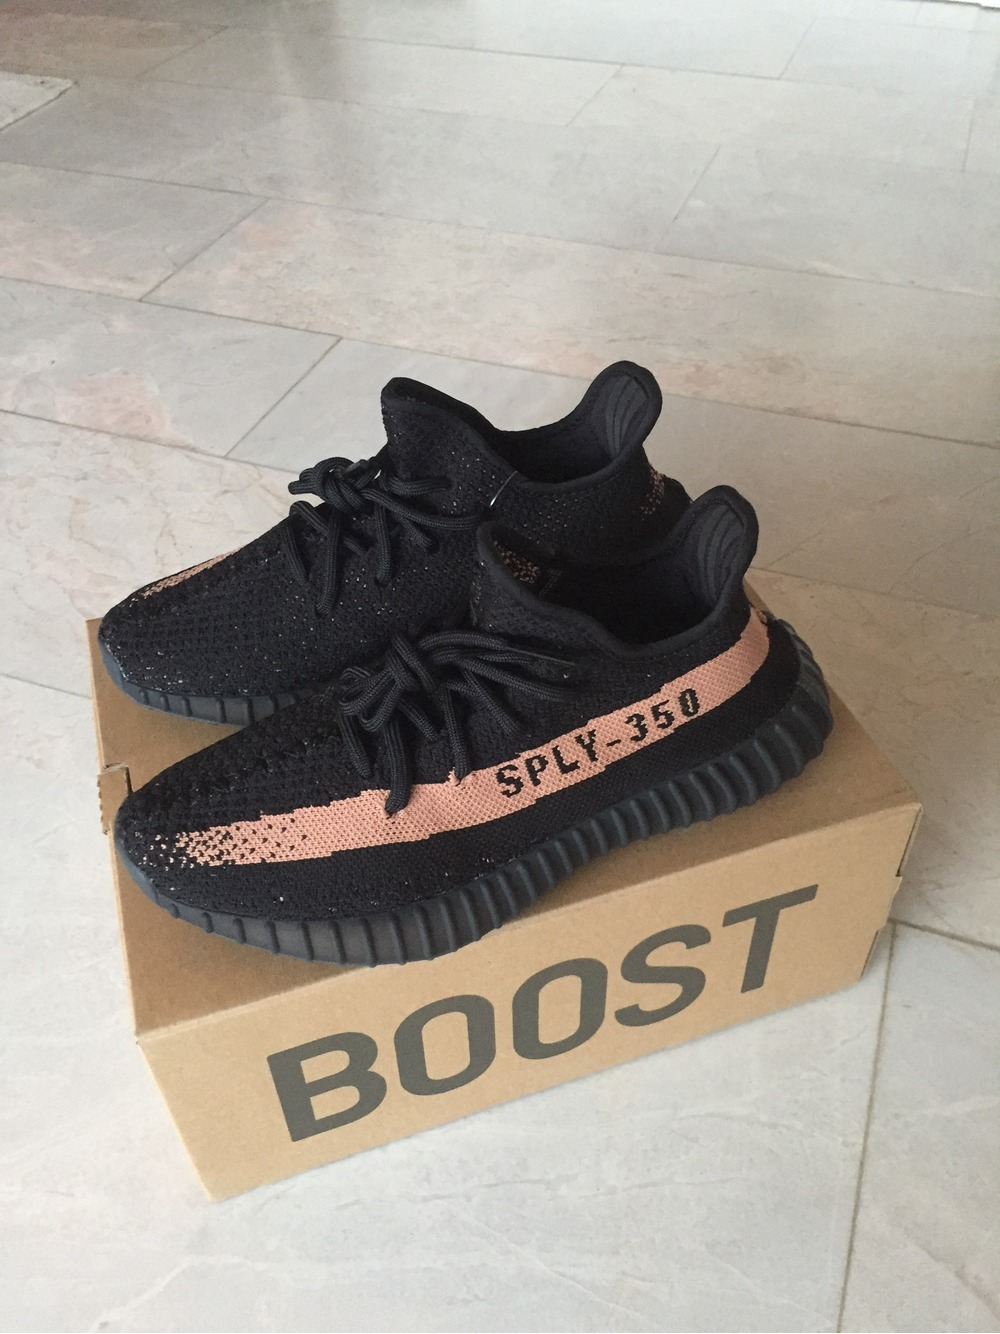 Yeezy Boost 350 V2 White Black Kanye Size 11.5 Mens Deadstock